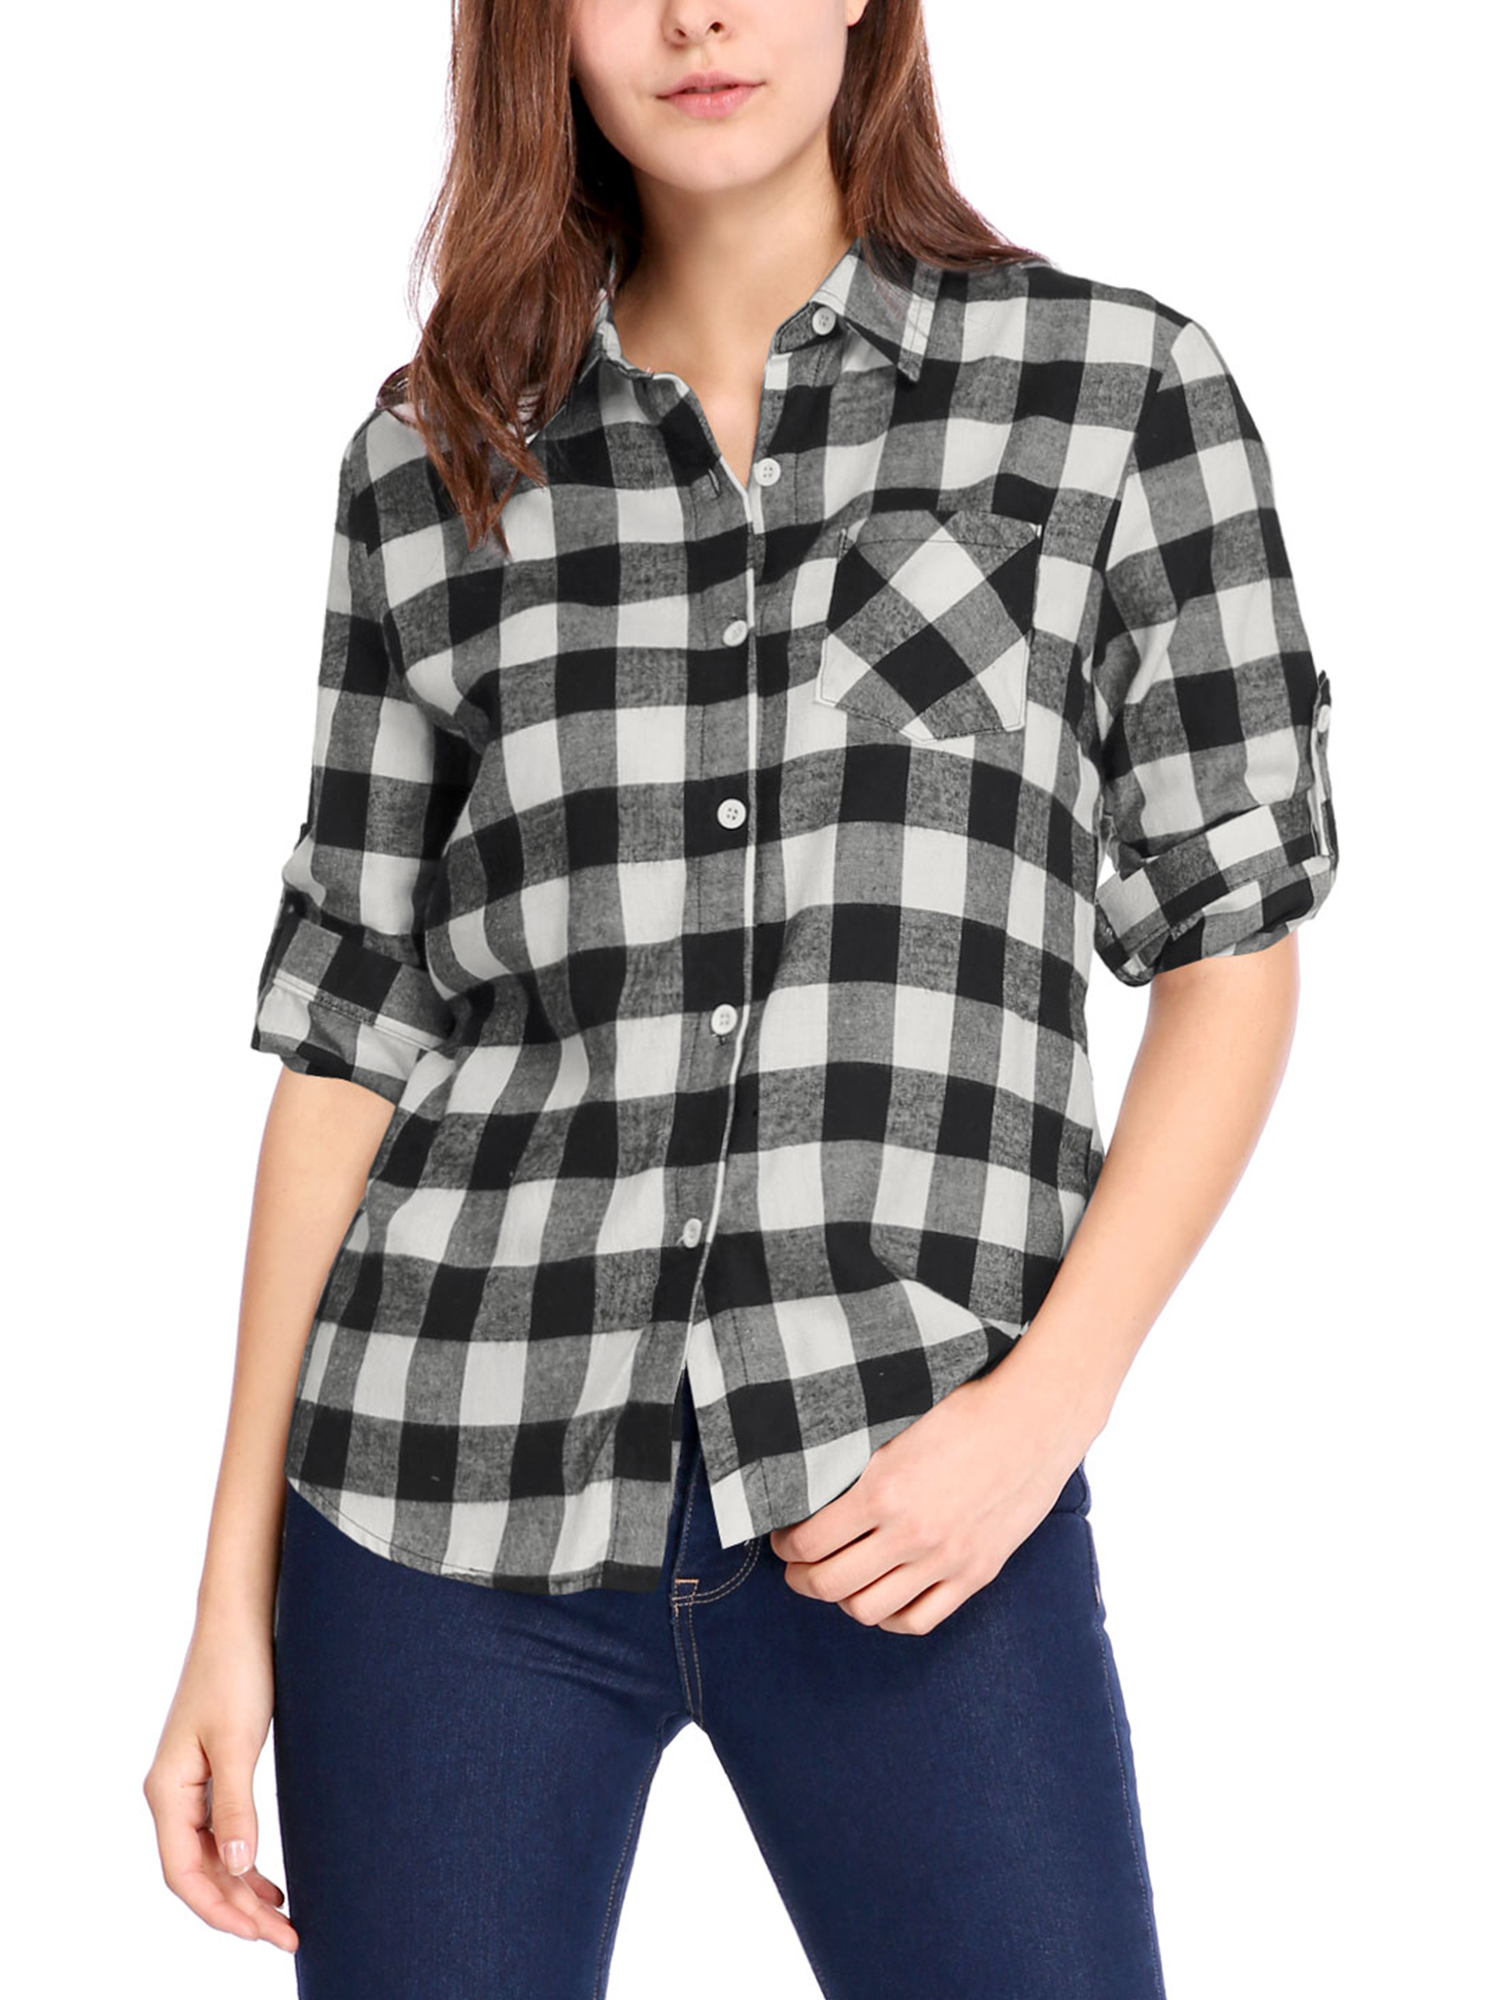 Ladies Button Up Long Sleeve Point Collar Plaids Shirt White Black XS